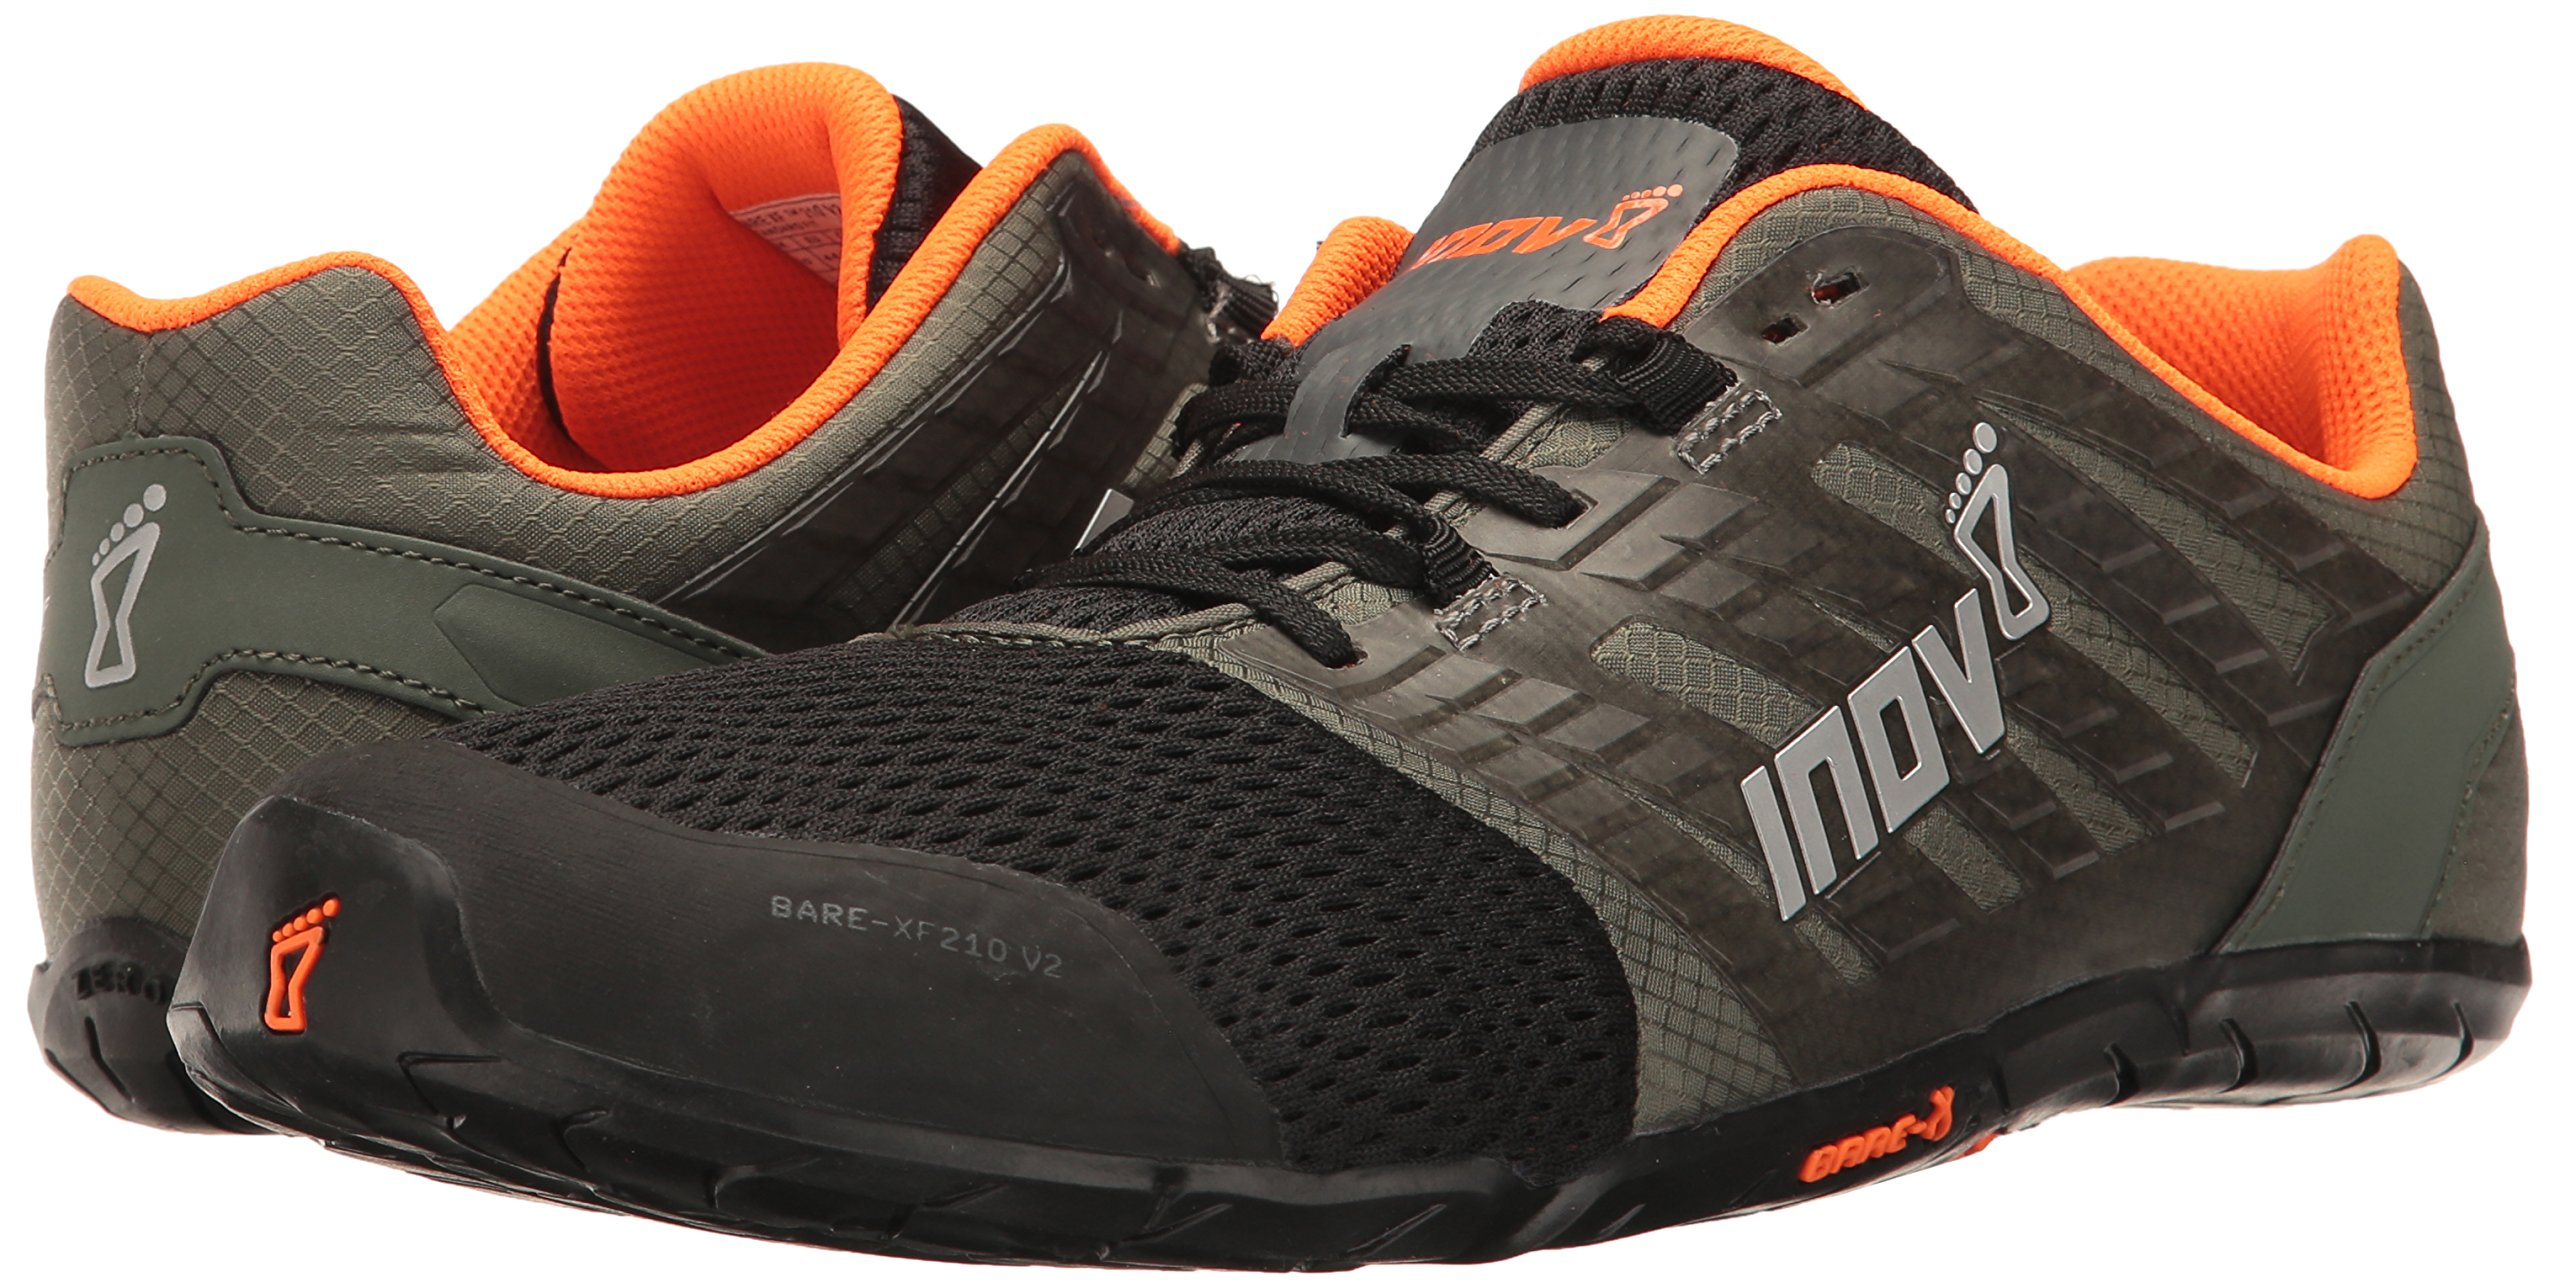 Inov-8 Men's Bare-XF 210 v2 (M) Cross Trainer Grey/Black/Orange 9 D US by Inov-8 (Image #6)